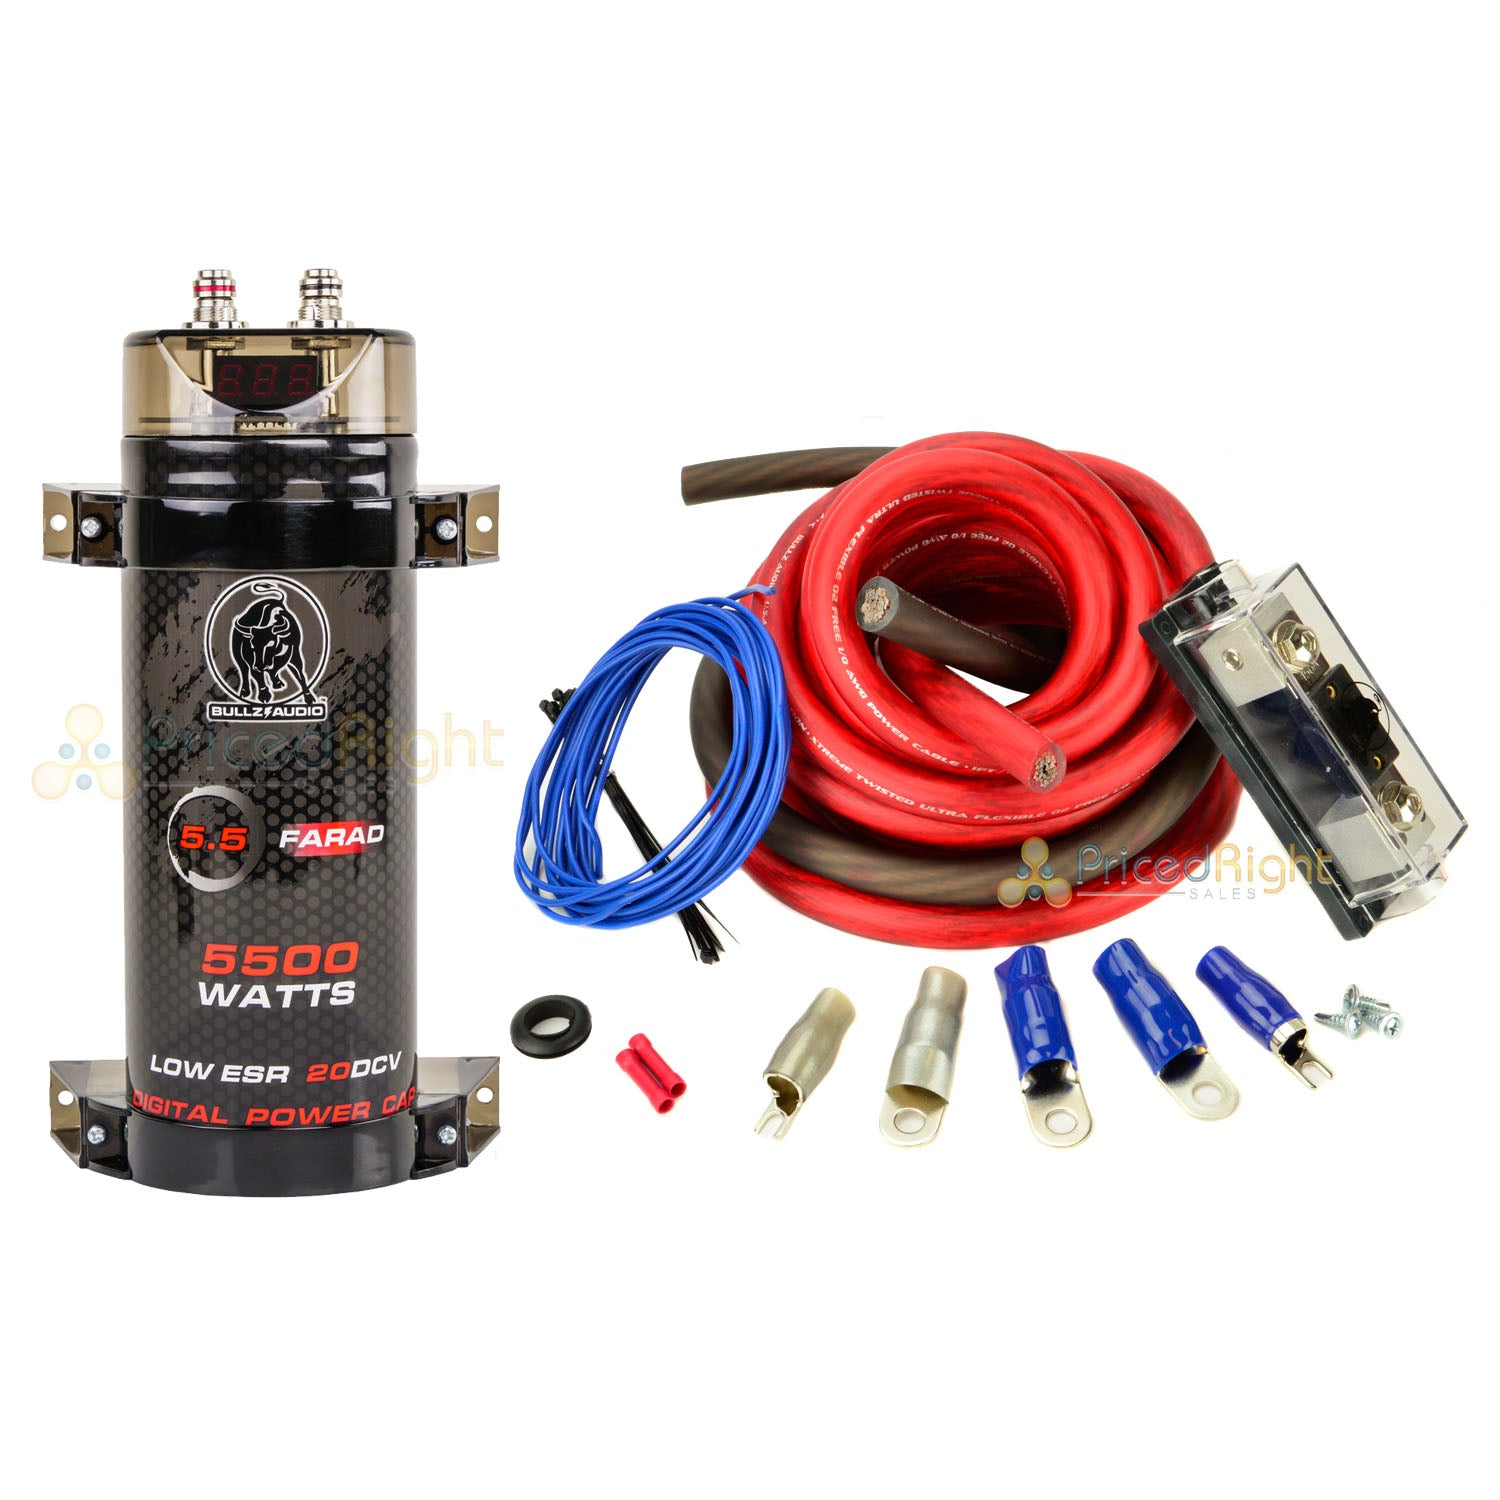 Bullz Audio BCAP5.5 Farad Capacitor True 0 GA Car Amp Installation Kit Bundle